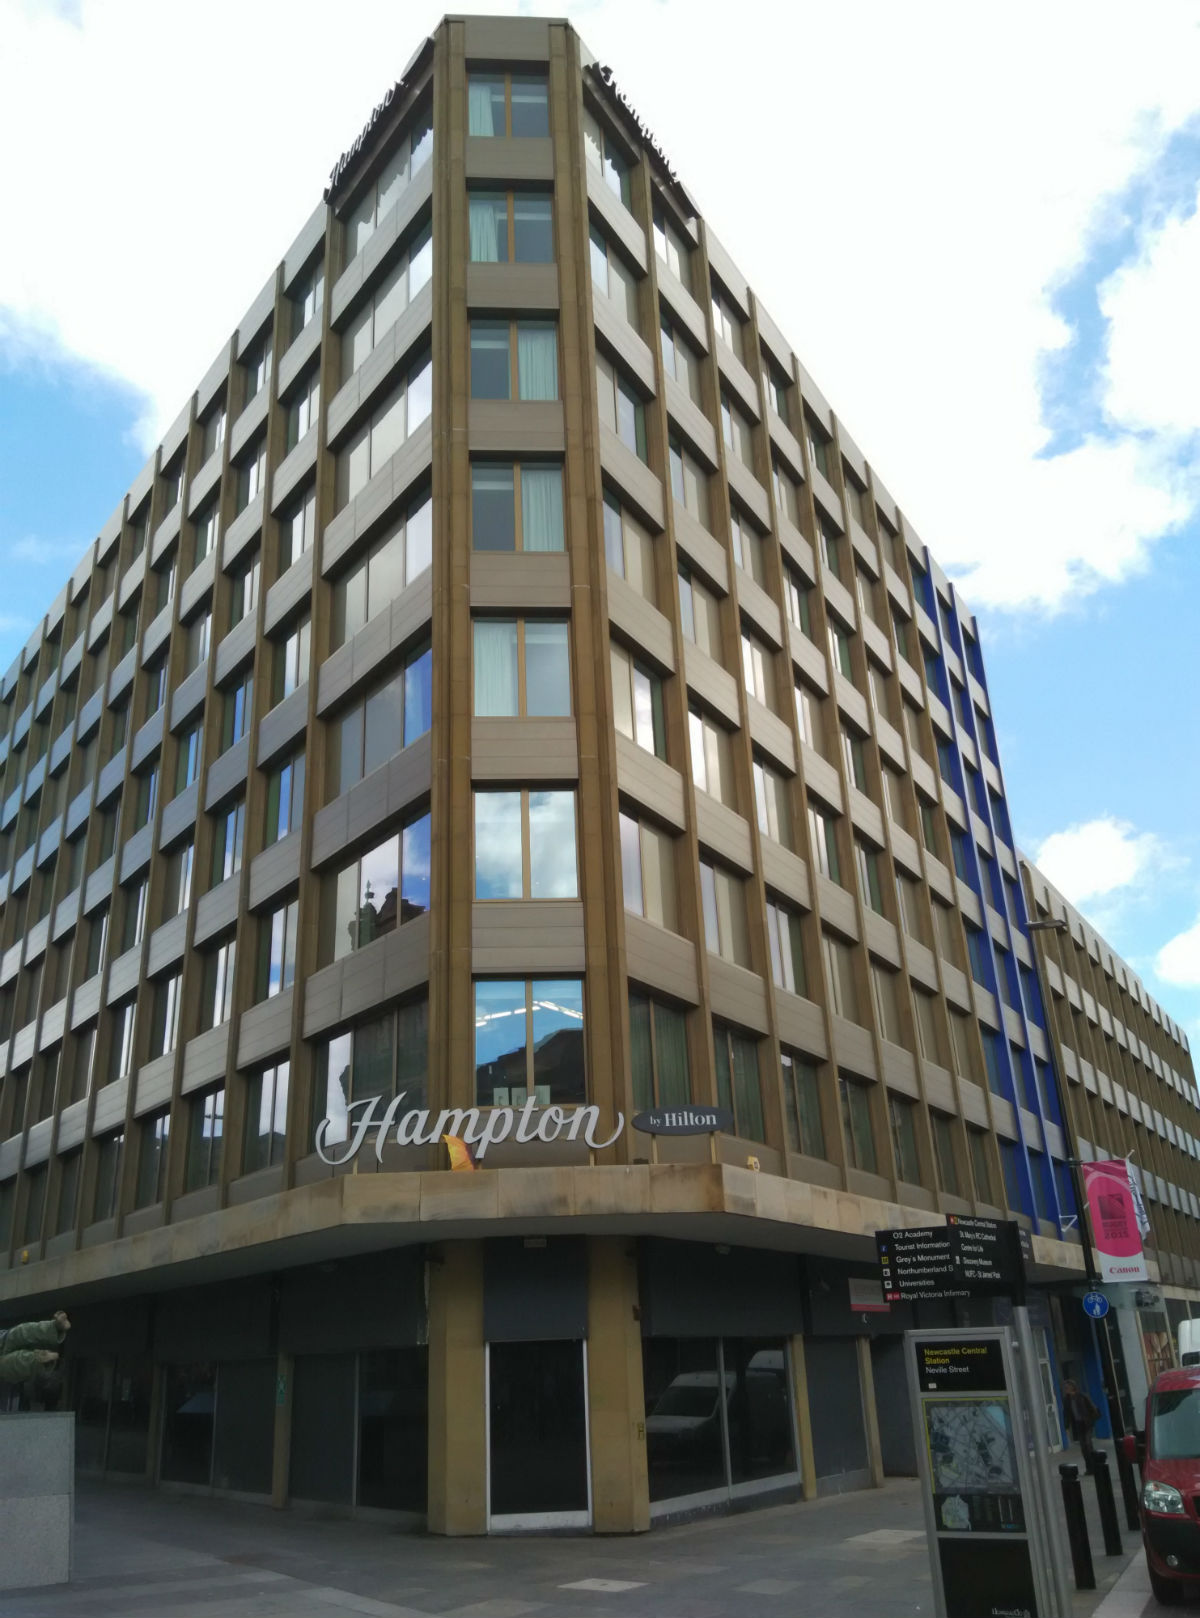 hampton-newcastle-exterior